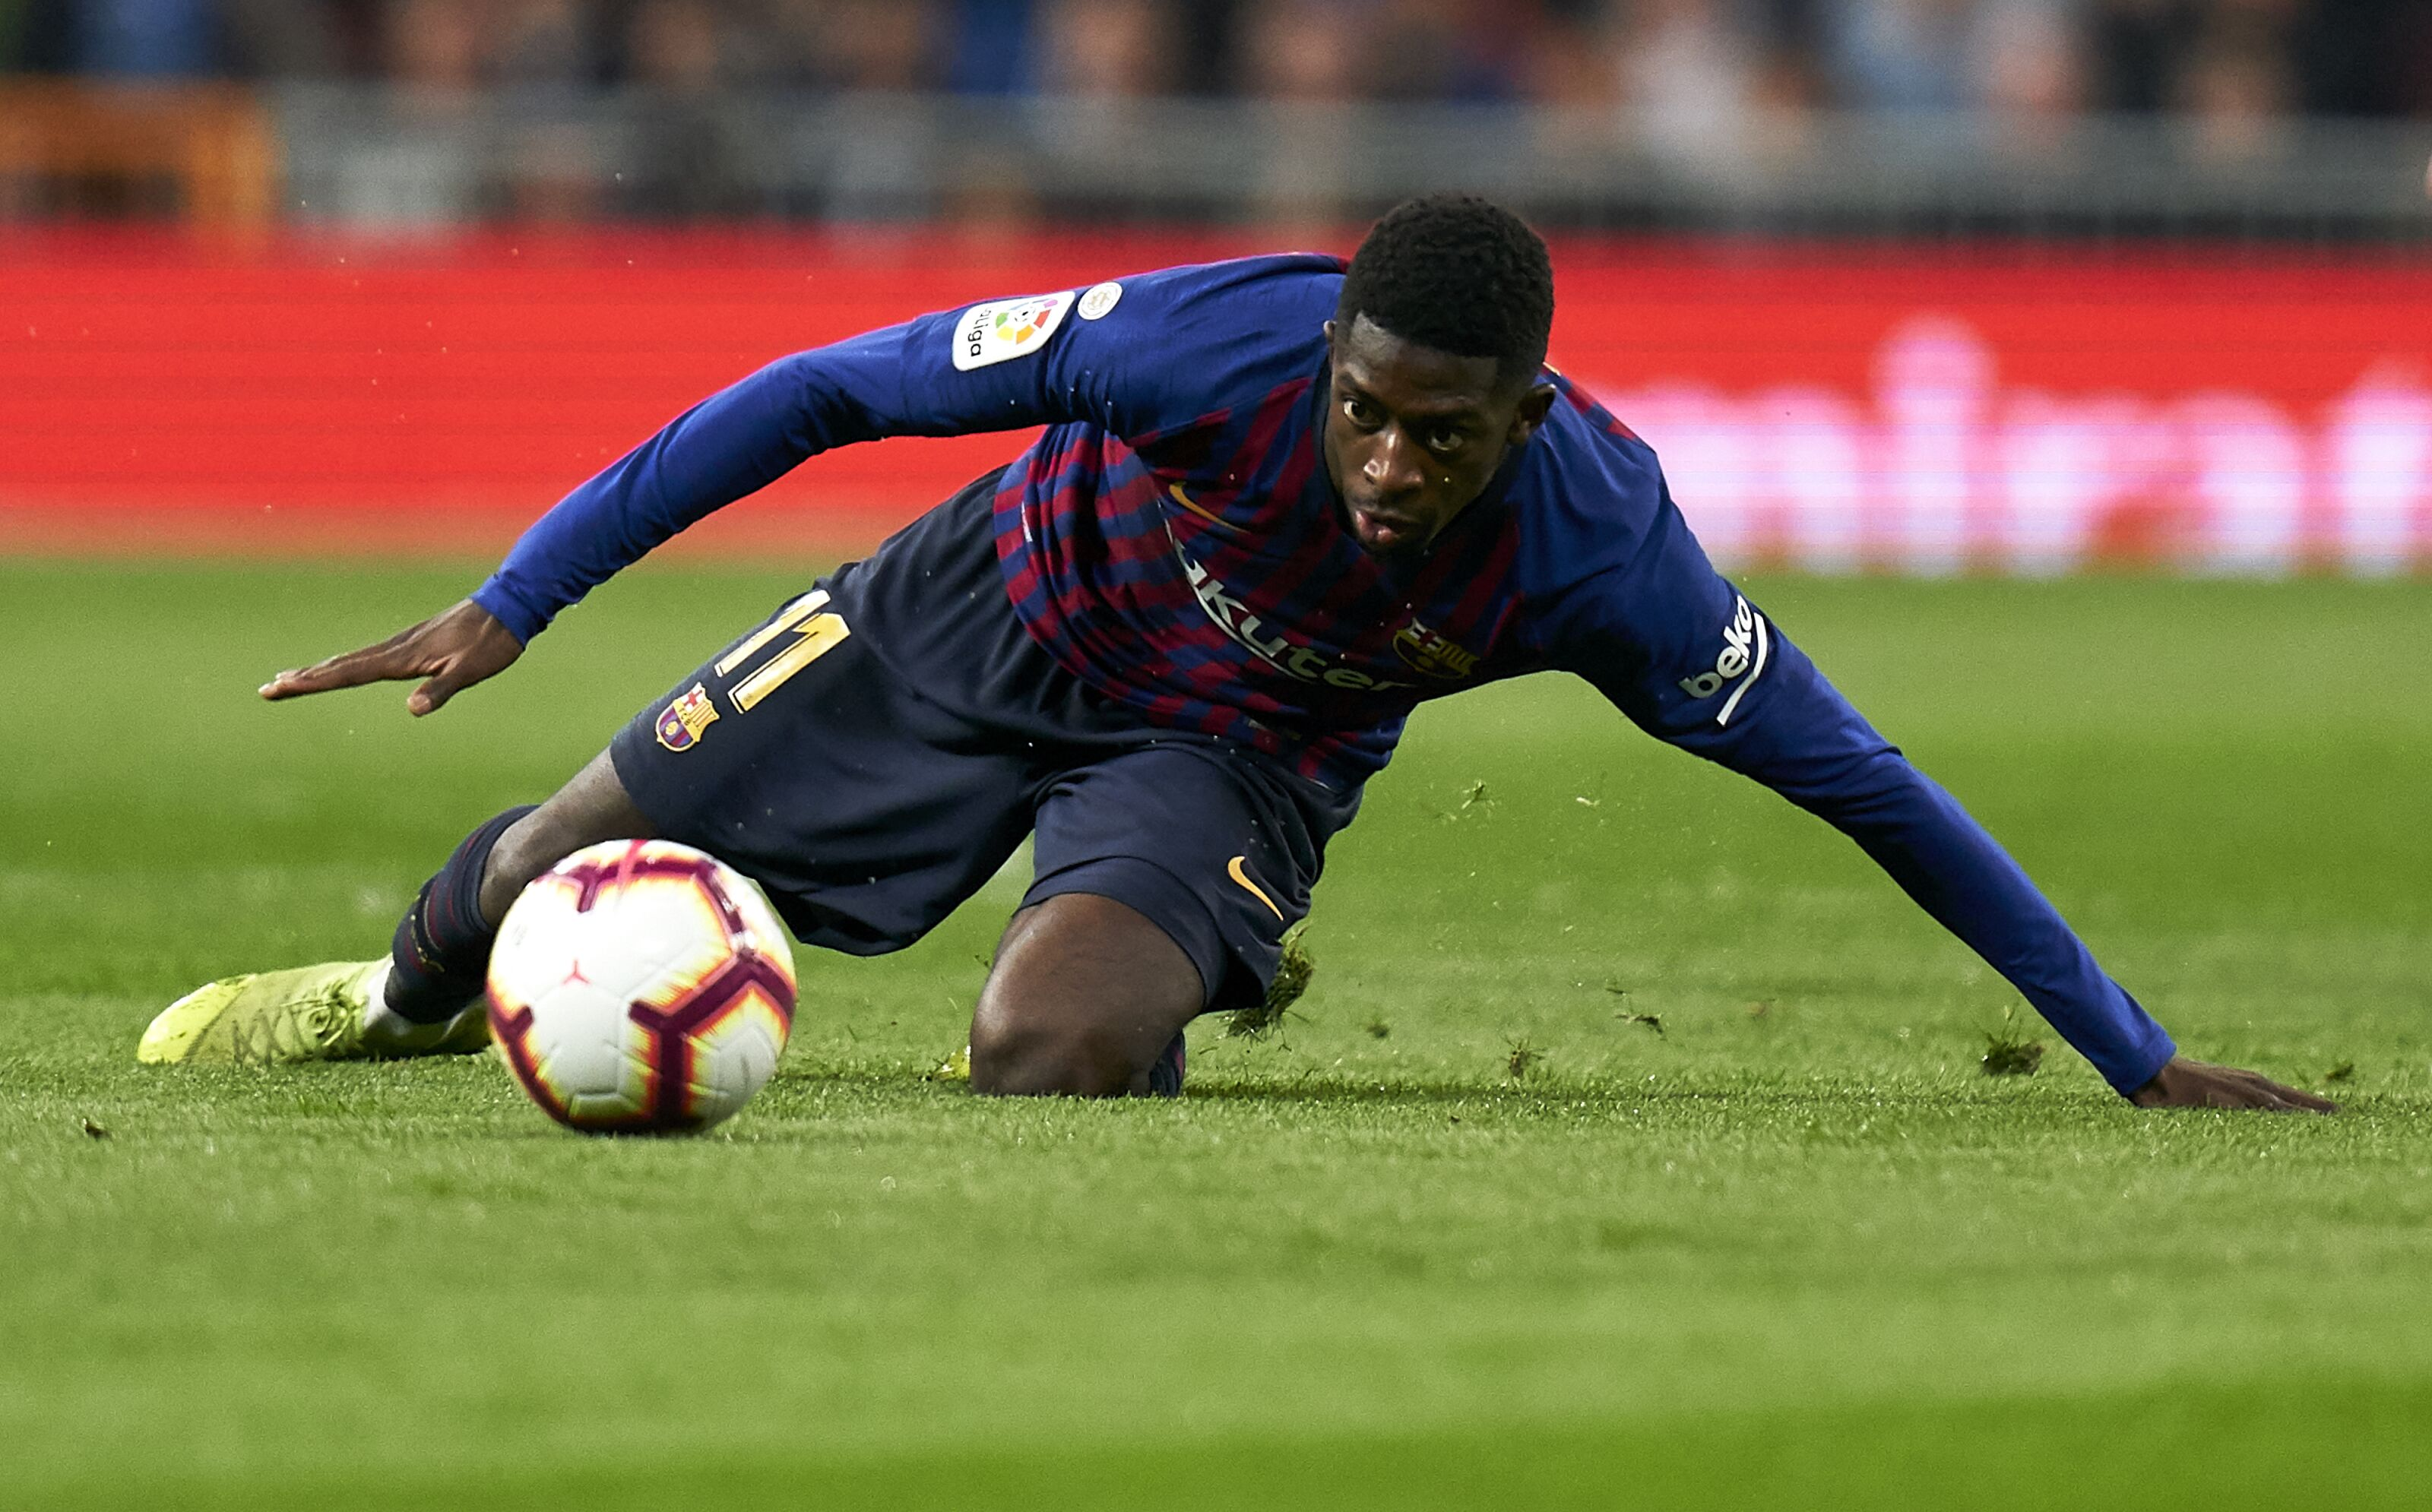 Barcelona: Ousmane Dembele could miss Lyon game with hamstring injury